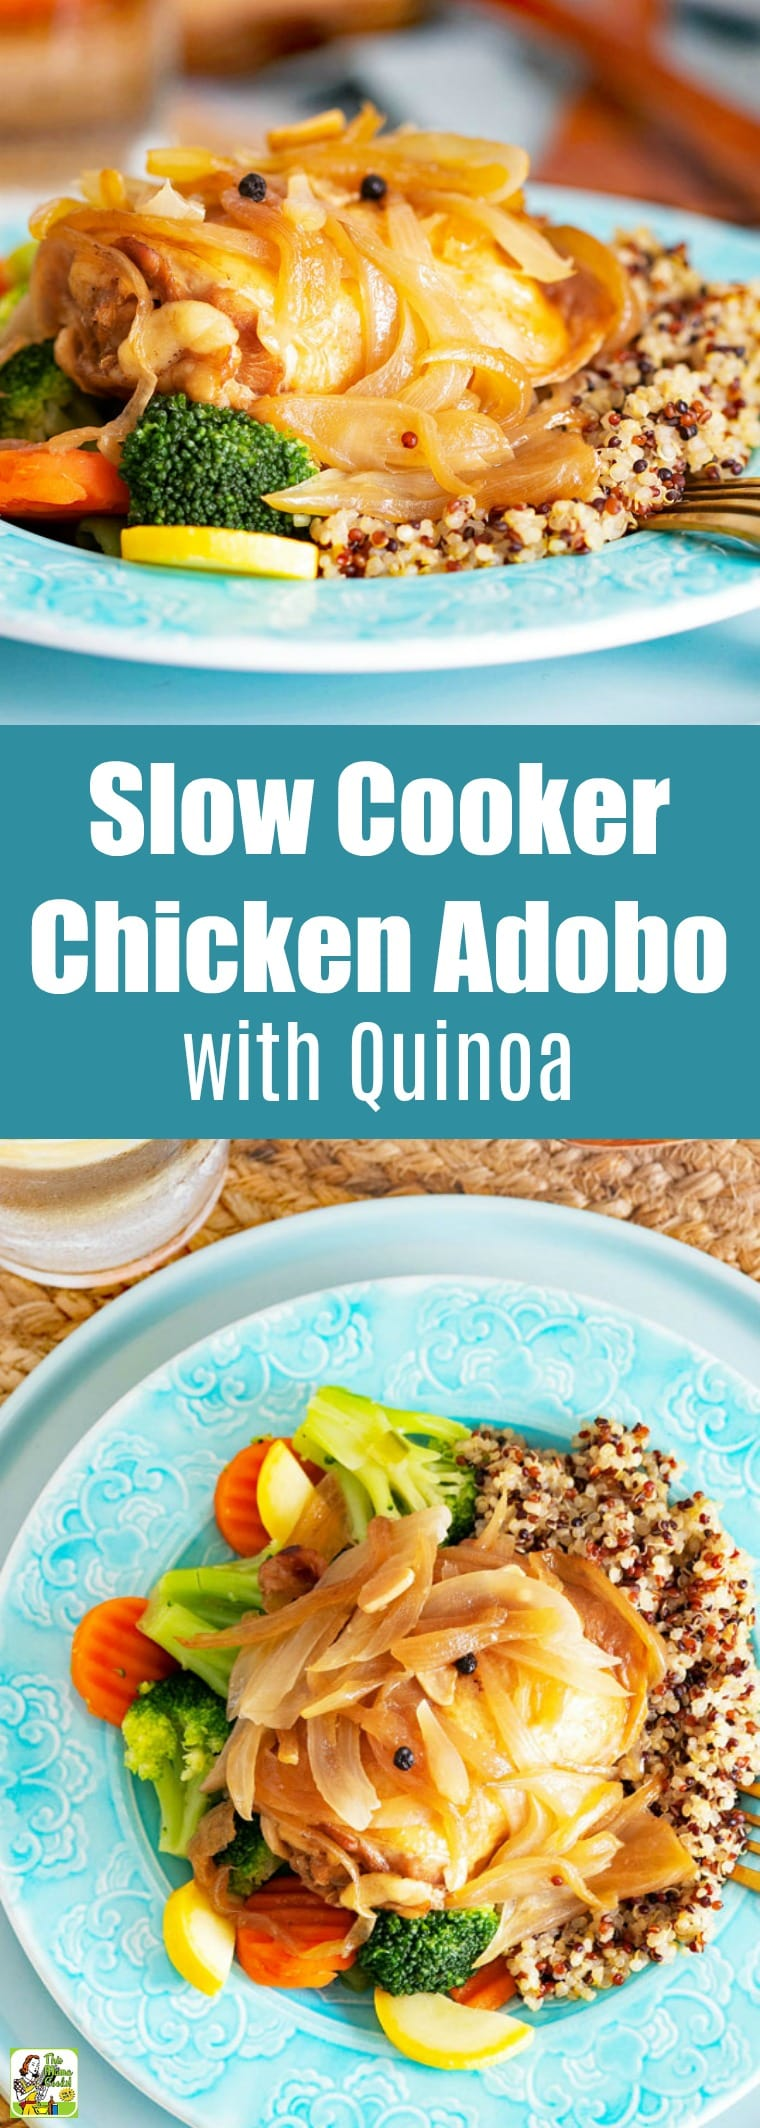 Slow Cooker Chicken Adobo with Quinoa